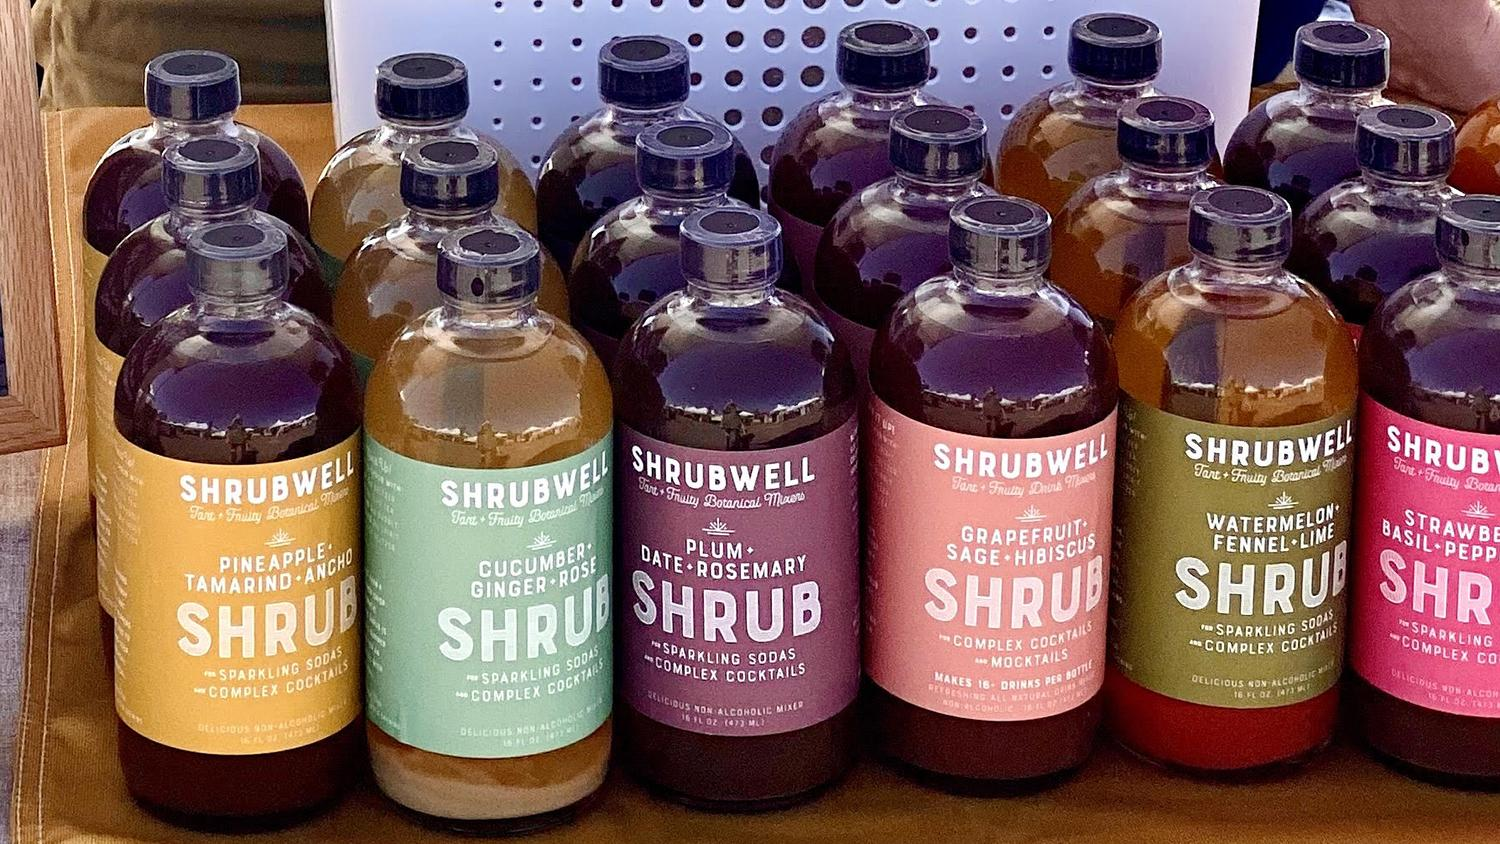 Shrubwell makes old-fashioned mixers for cocktails or mocktails